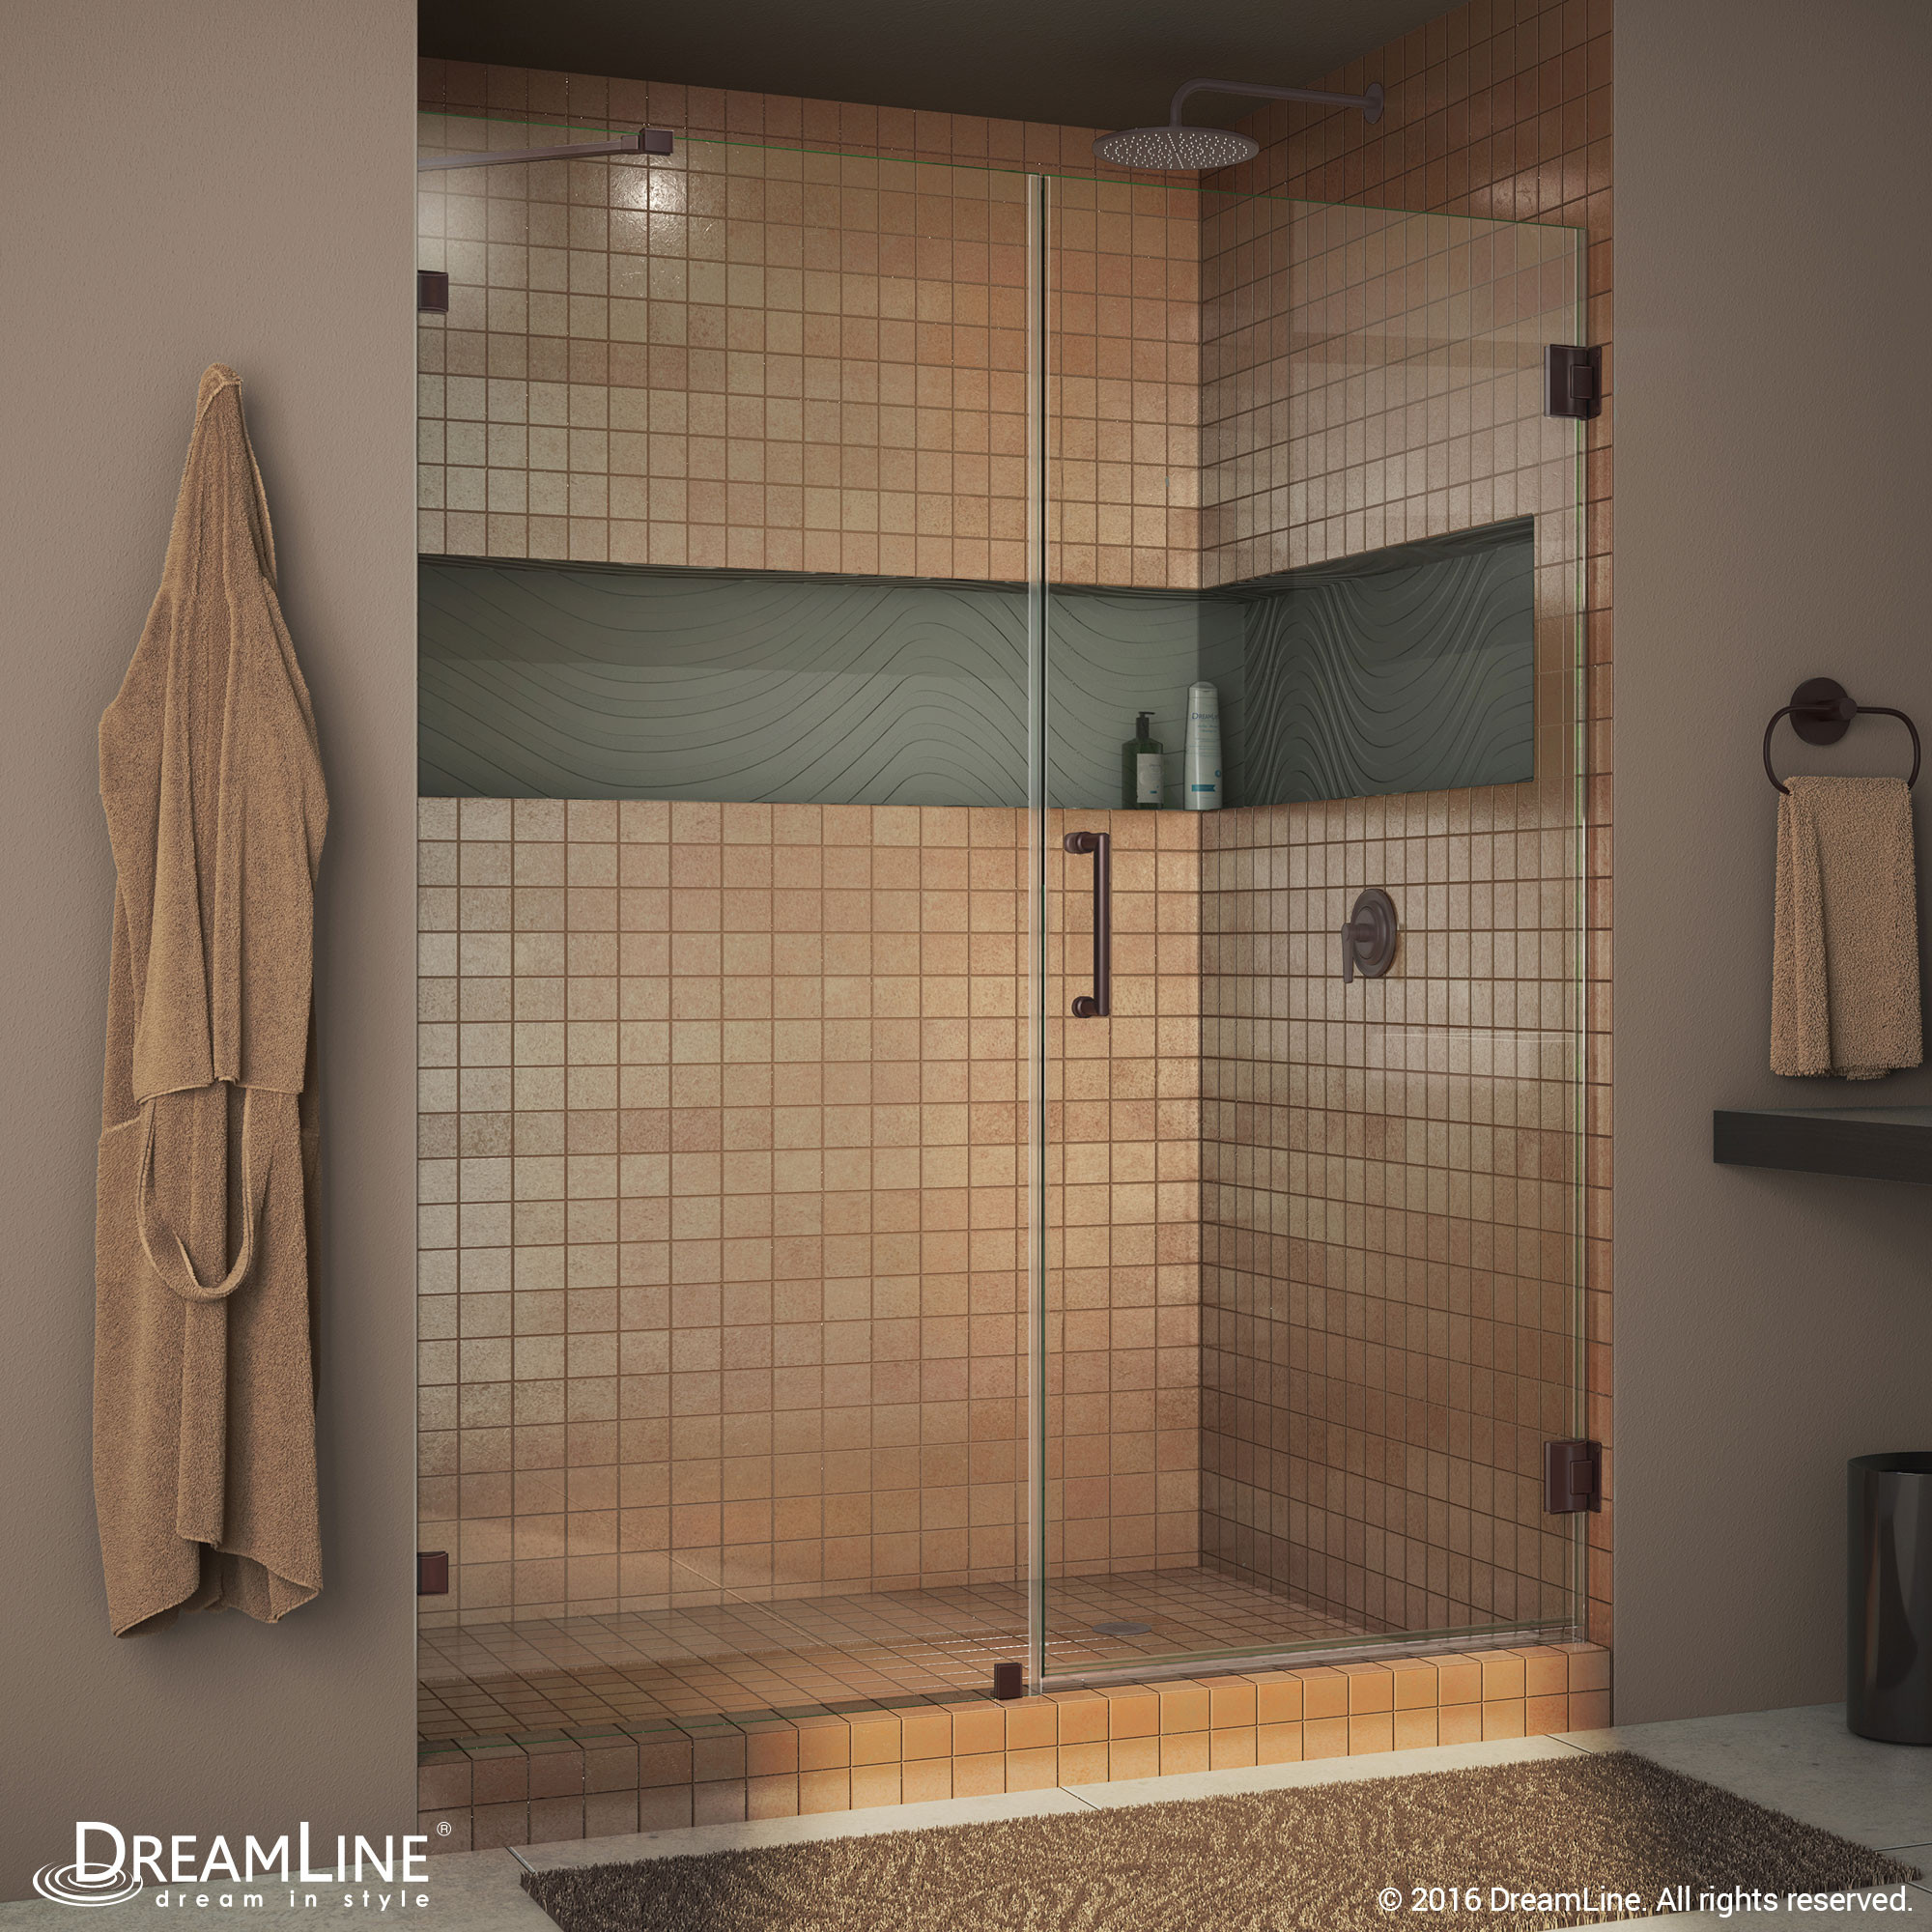 "DreamLine SHDR-23597210-06 Oil Rubbed Bronze Radiance 59"" Frameless Hinged Clear Shower Door"